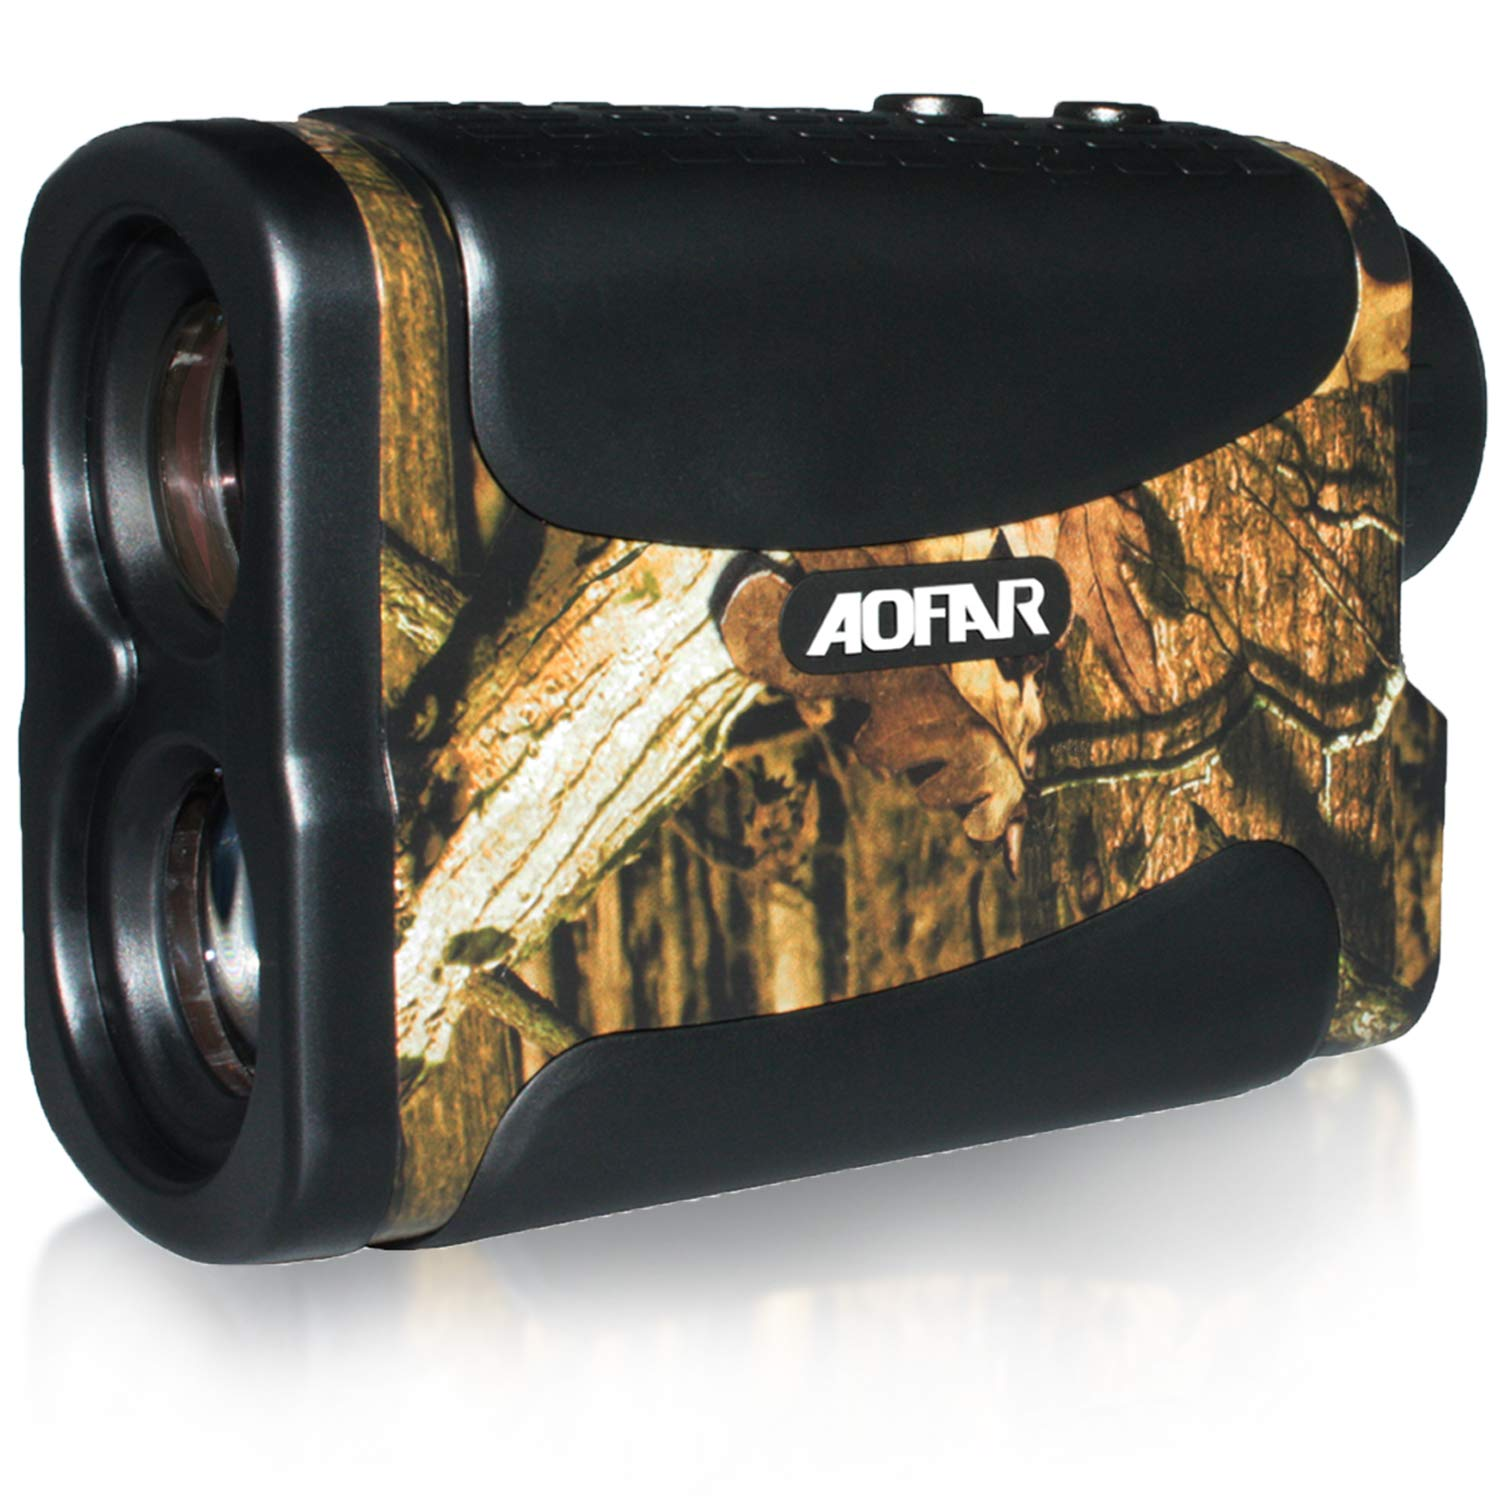 AOFAR Hunting Archery Range Finder-700 Yards Waterproof Laser Rangefinder for Bow Hunting with Range Scan Fog and Speed Mode, Free Battery, Carrying Case by AOFAR